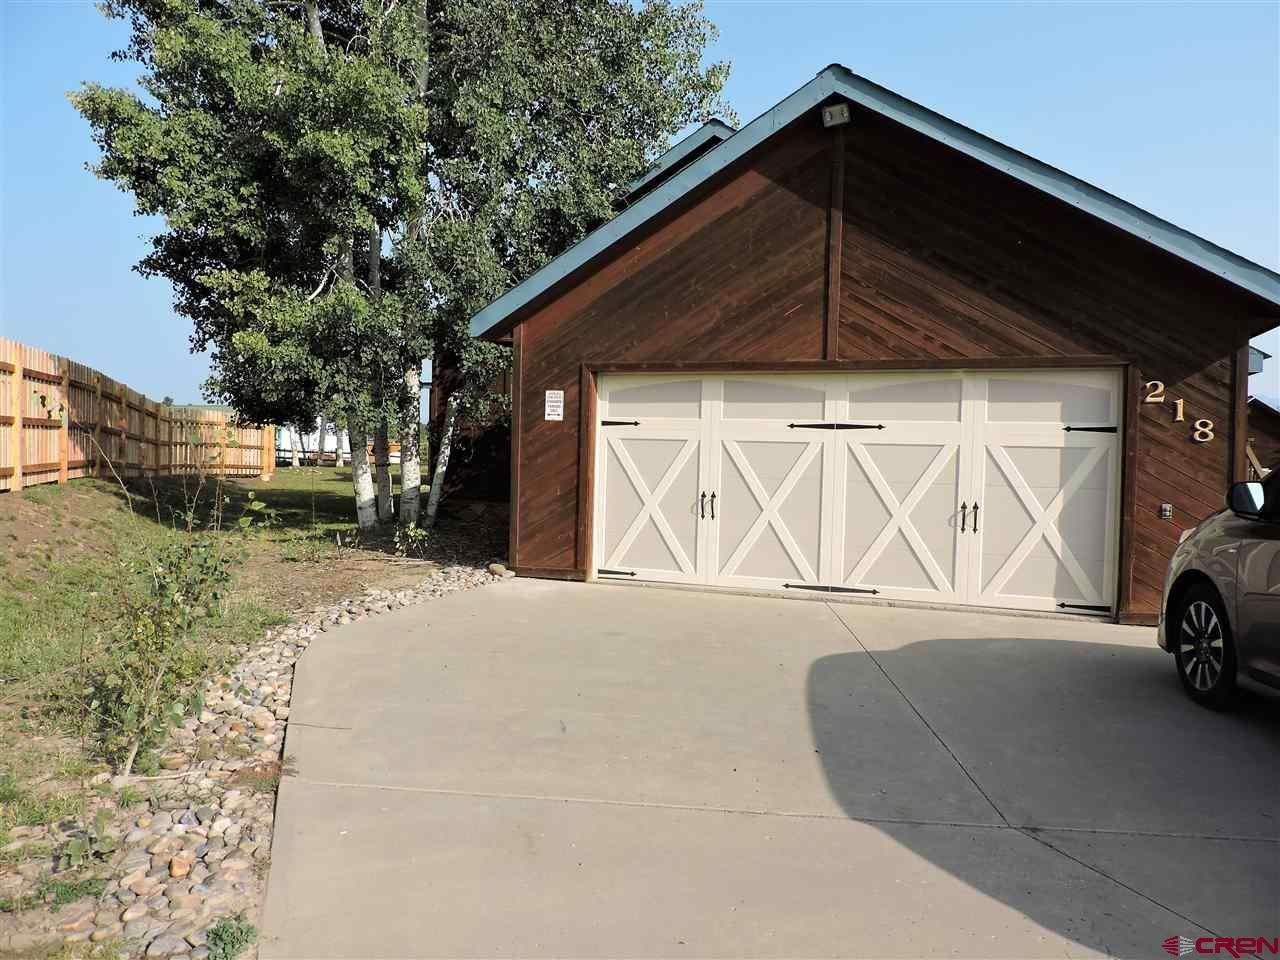 Photo of 218 Driftwood Drive, Pagosa Springs, CO 81147 (MLS # 774687)